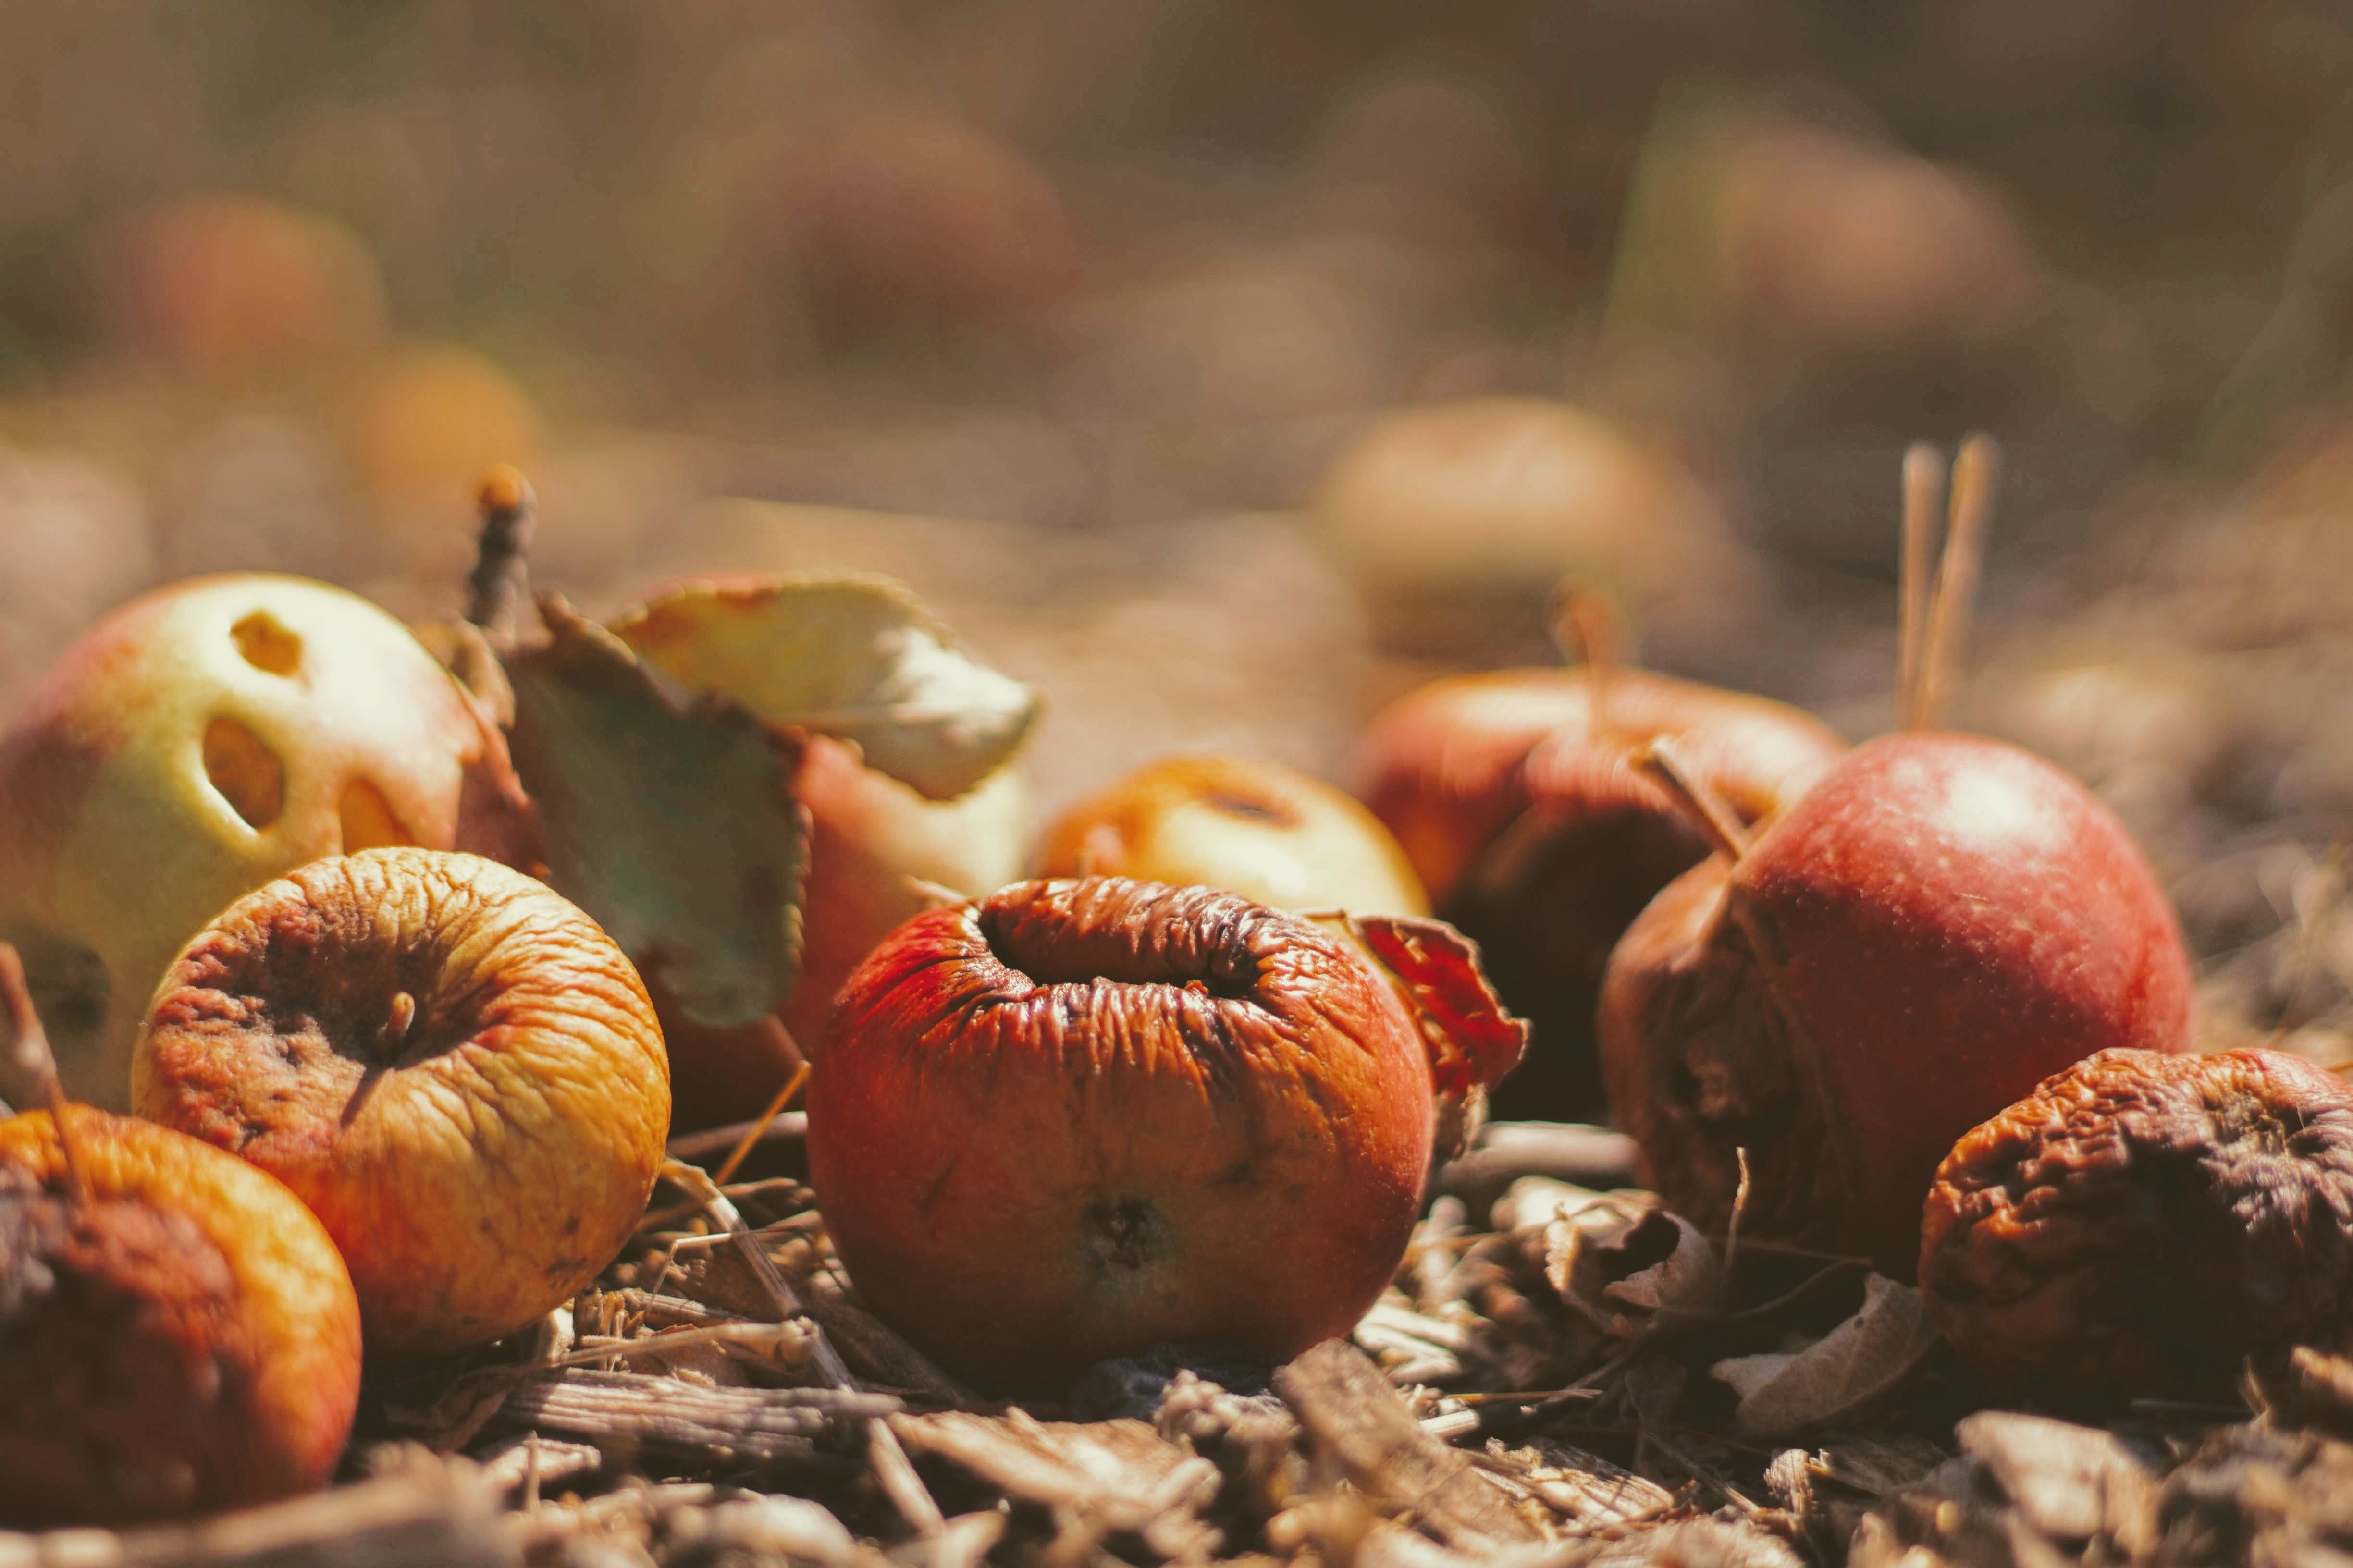 Apples rotting under a tree